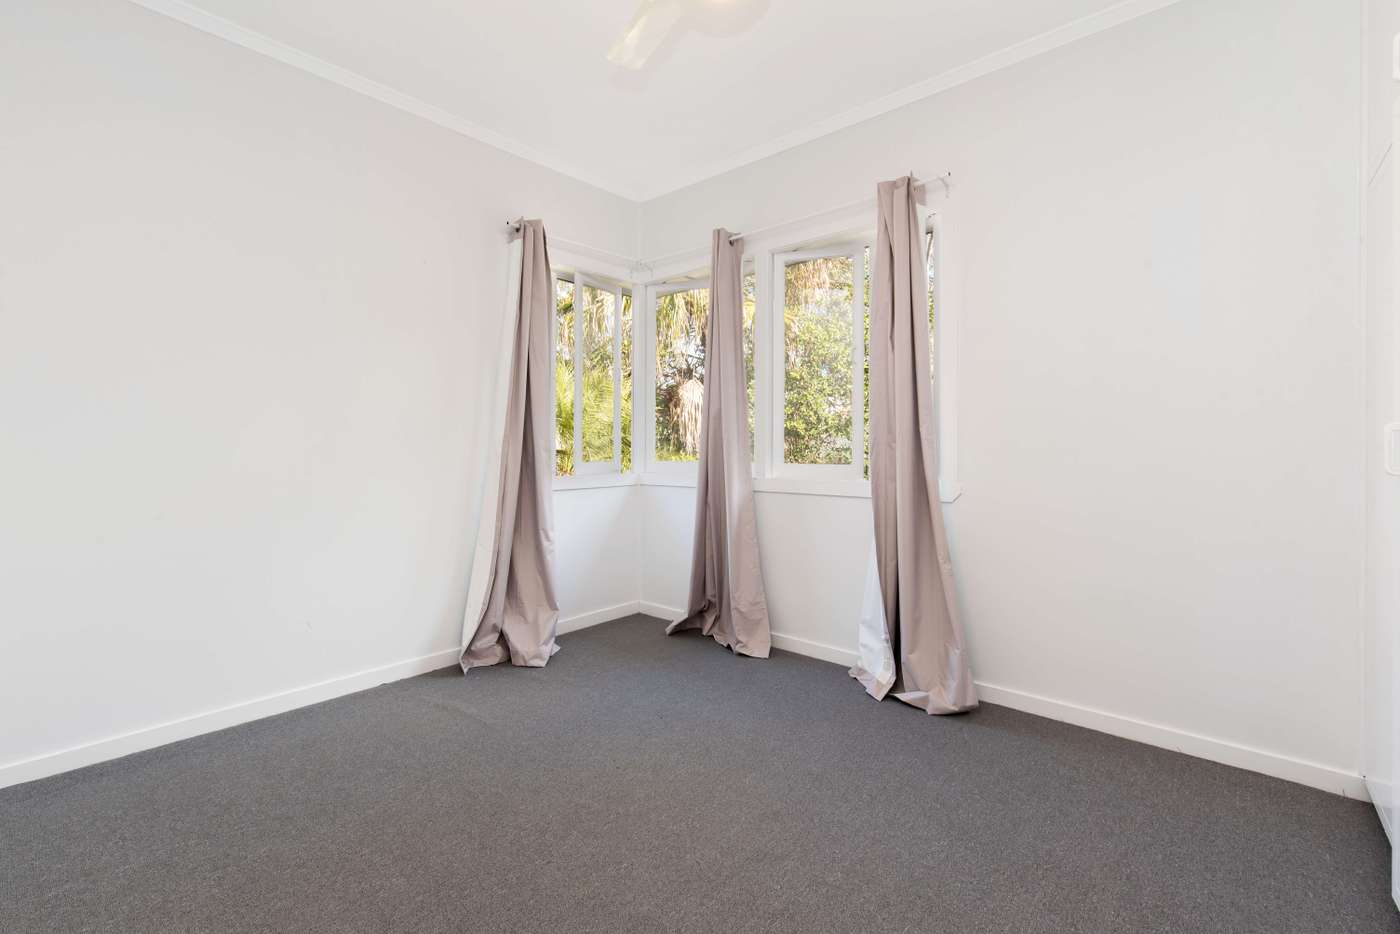 Sixth view of Homely house listing, 12 Romea Street, The Gap QLD 4061